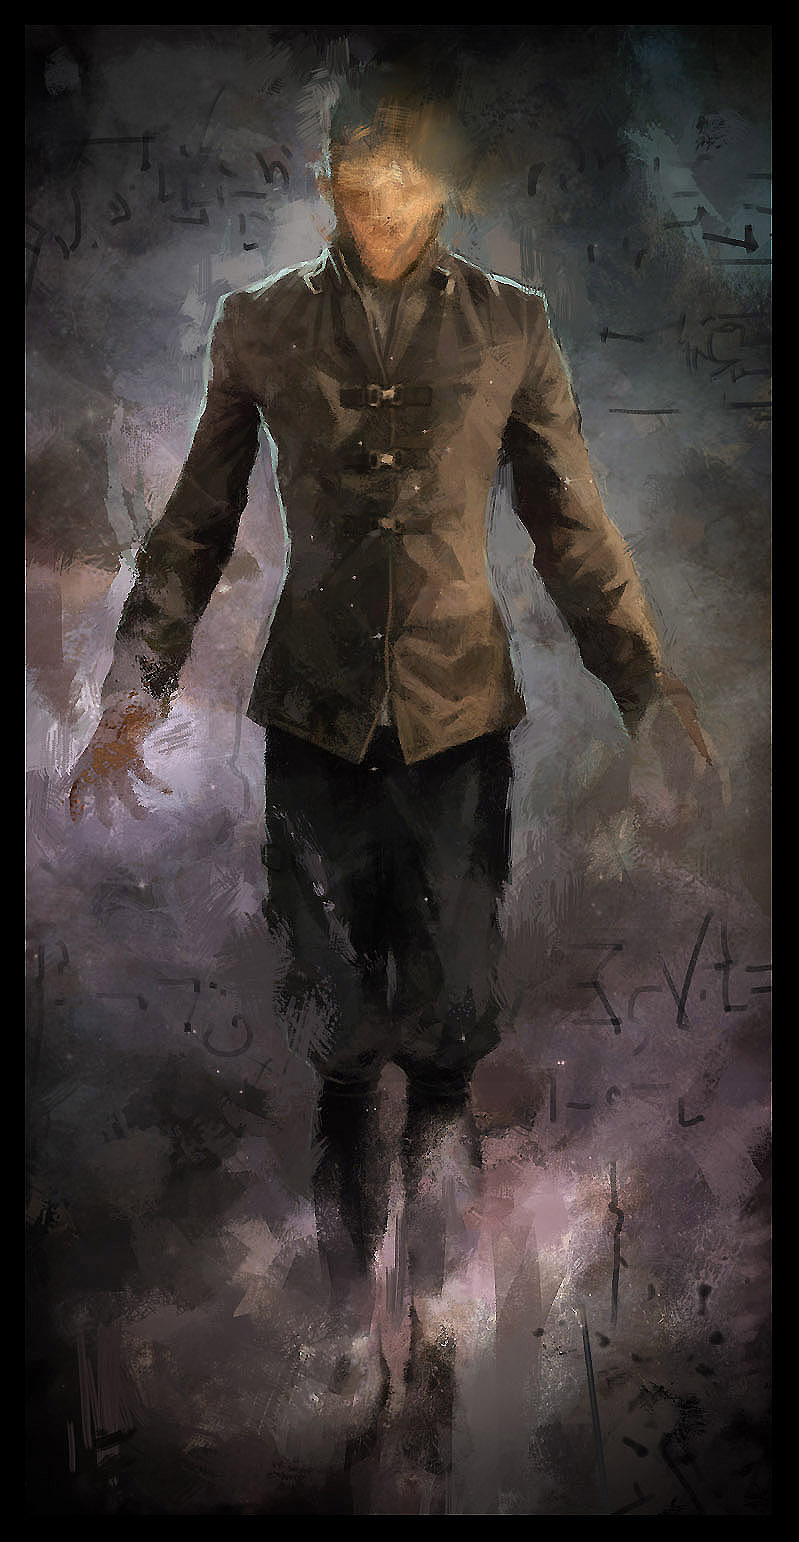 Sokolov S Paintings Are Collectible Works Of Art In Dishonored